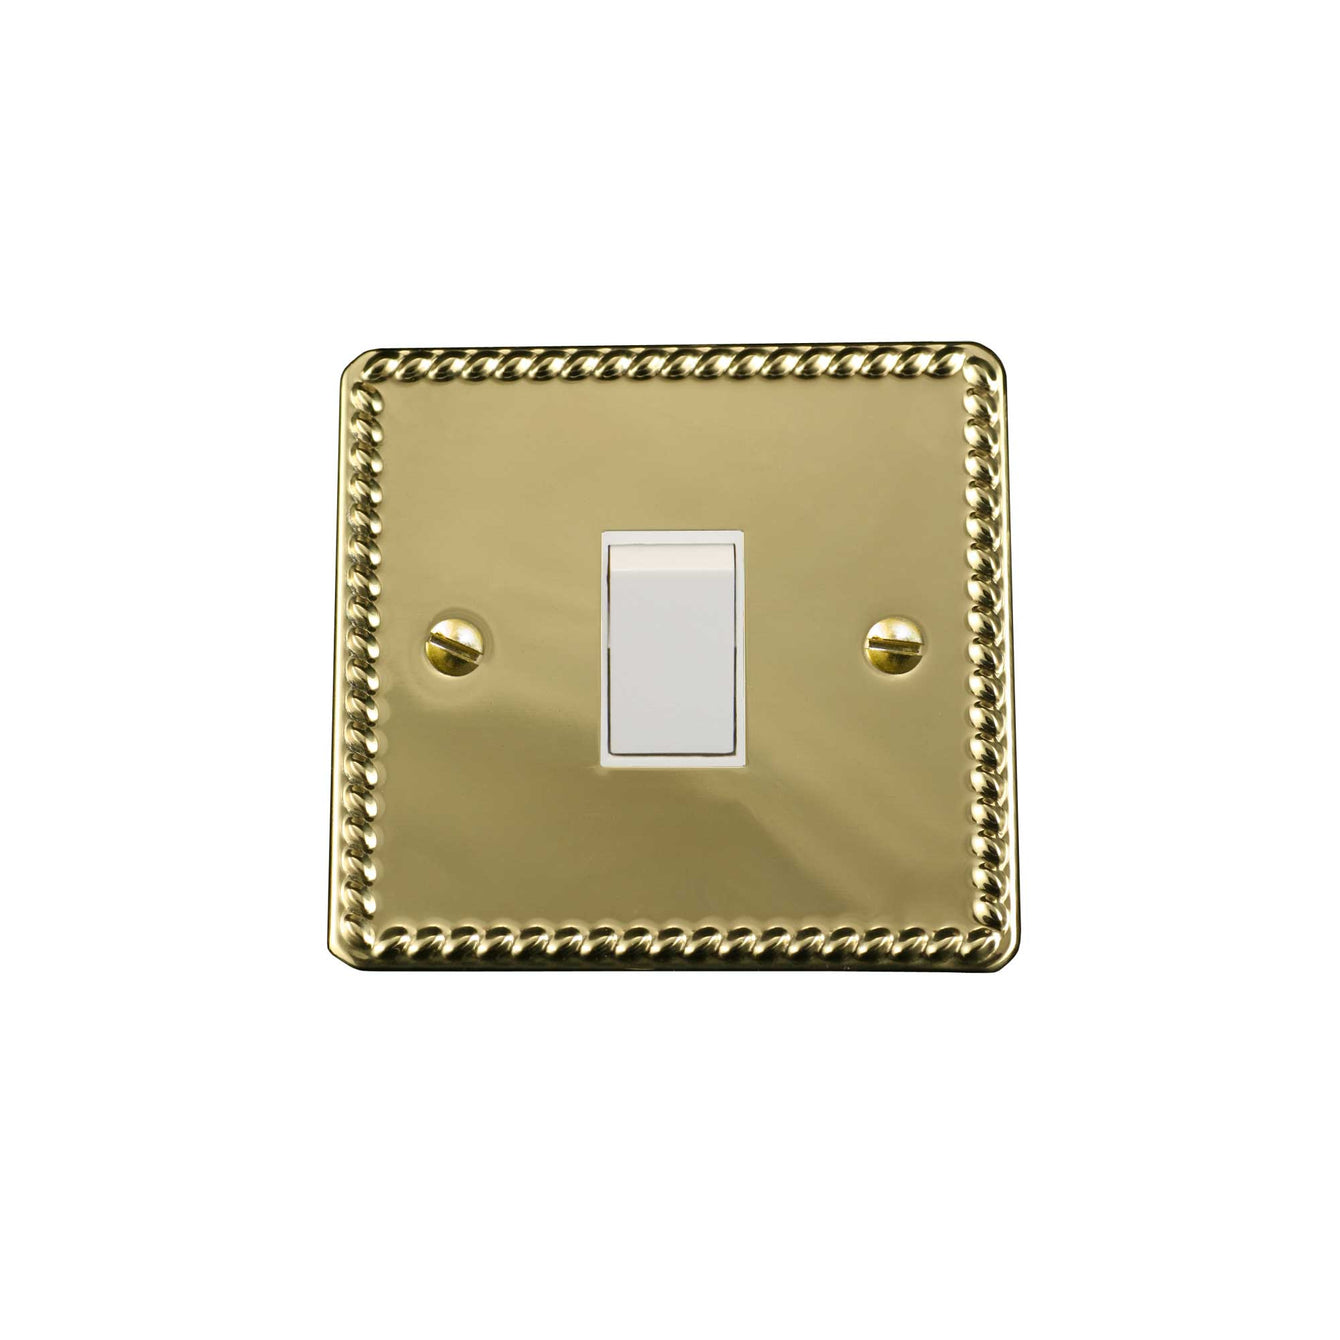 ElekTek Light Switch Conversion Cover Plate Georgian Brass Single Double - Buy It Better